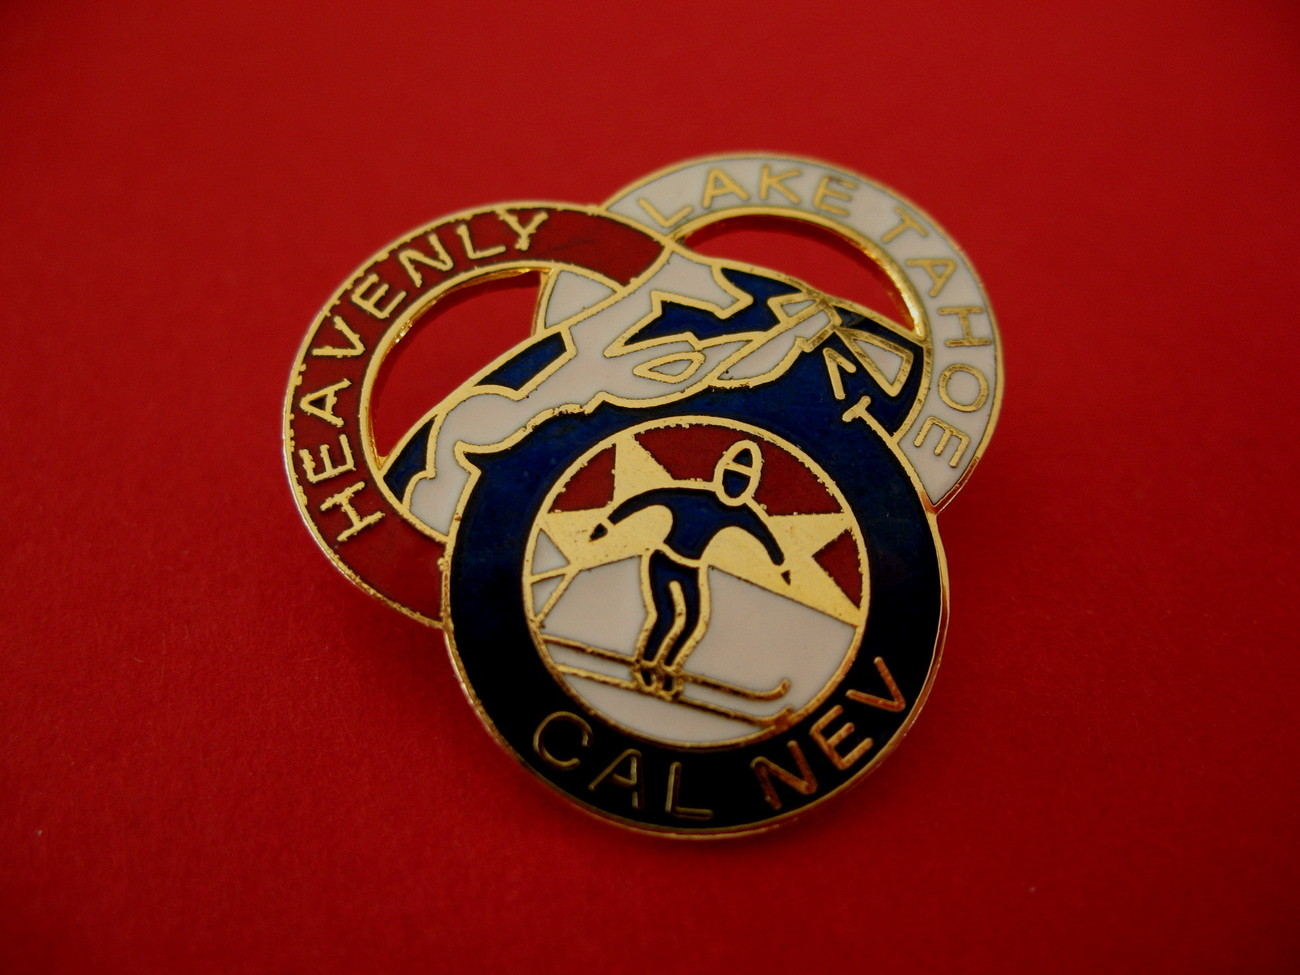 Heavenly Ski Lake Tahoe Cal Nev Souvenir Lapel Hat Pin